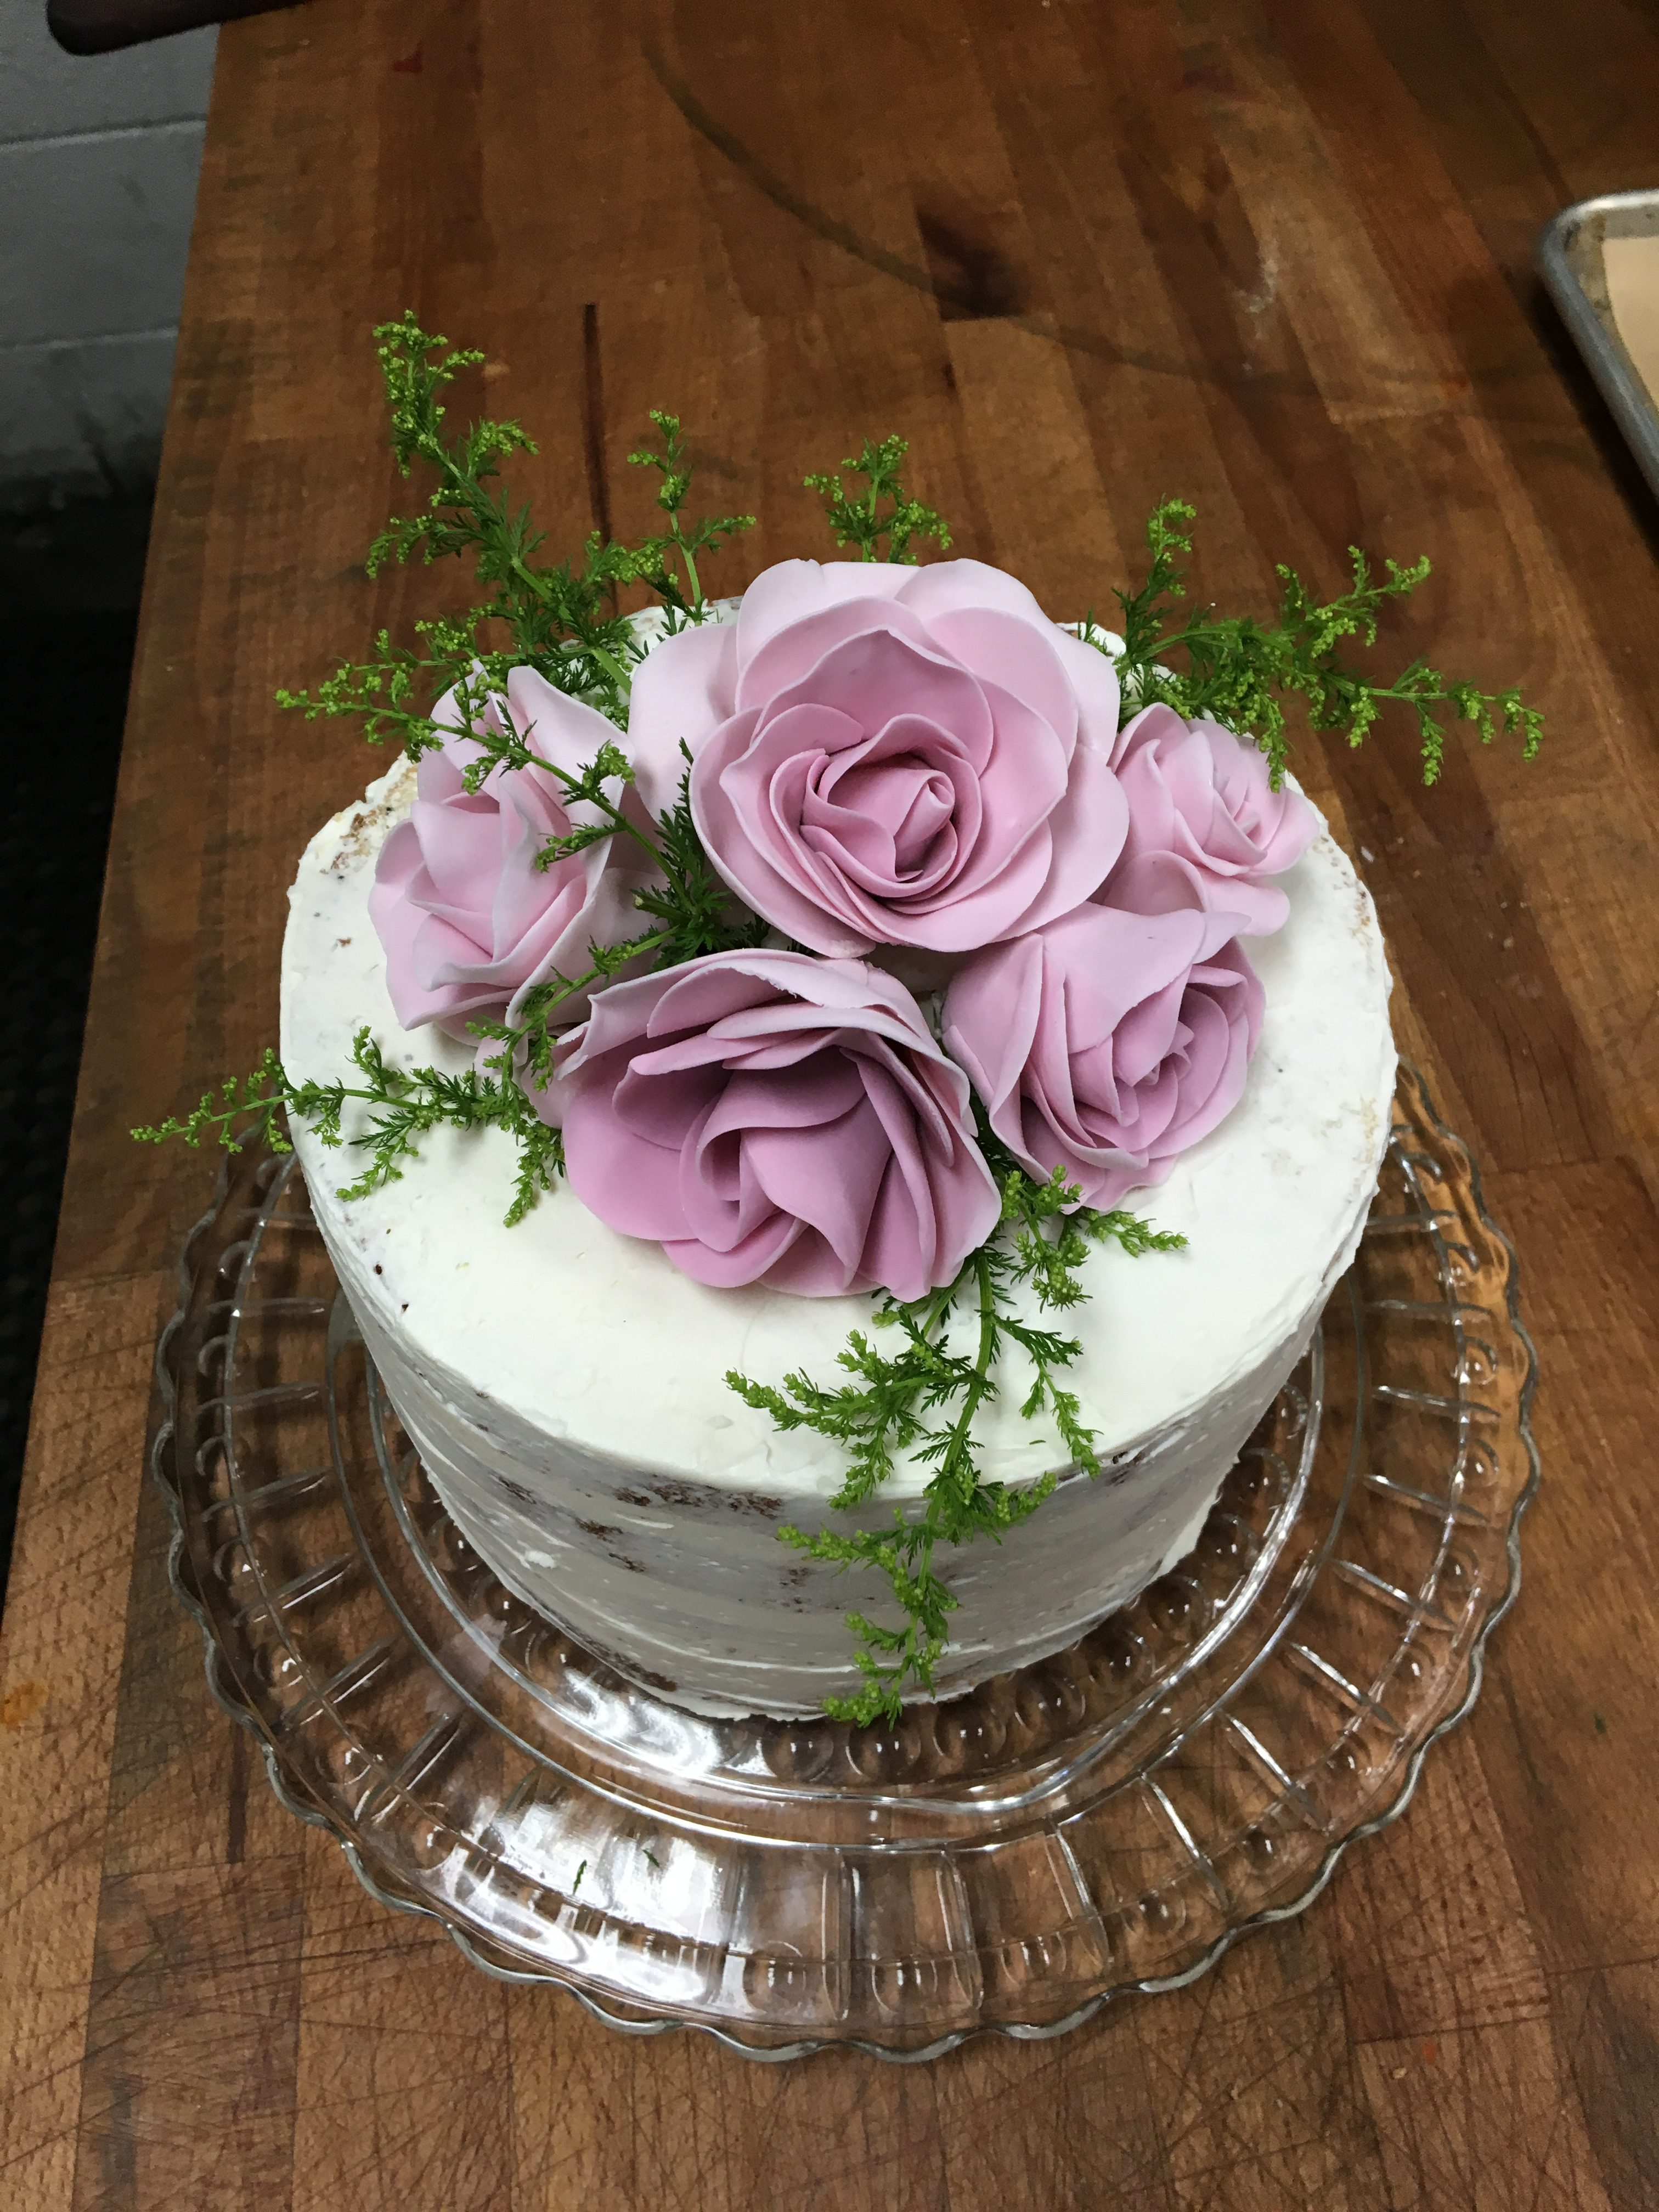 White salmon baking company cakes cake4roses dhlflorist Image collections